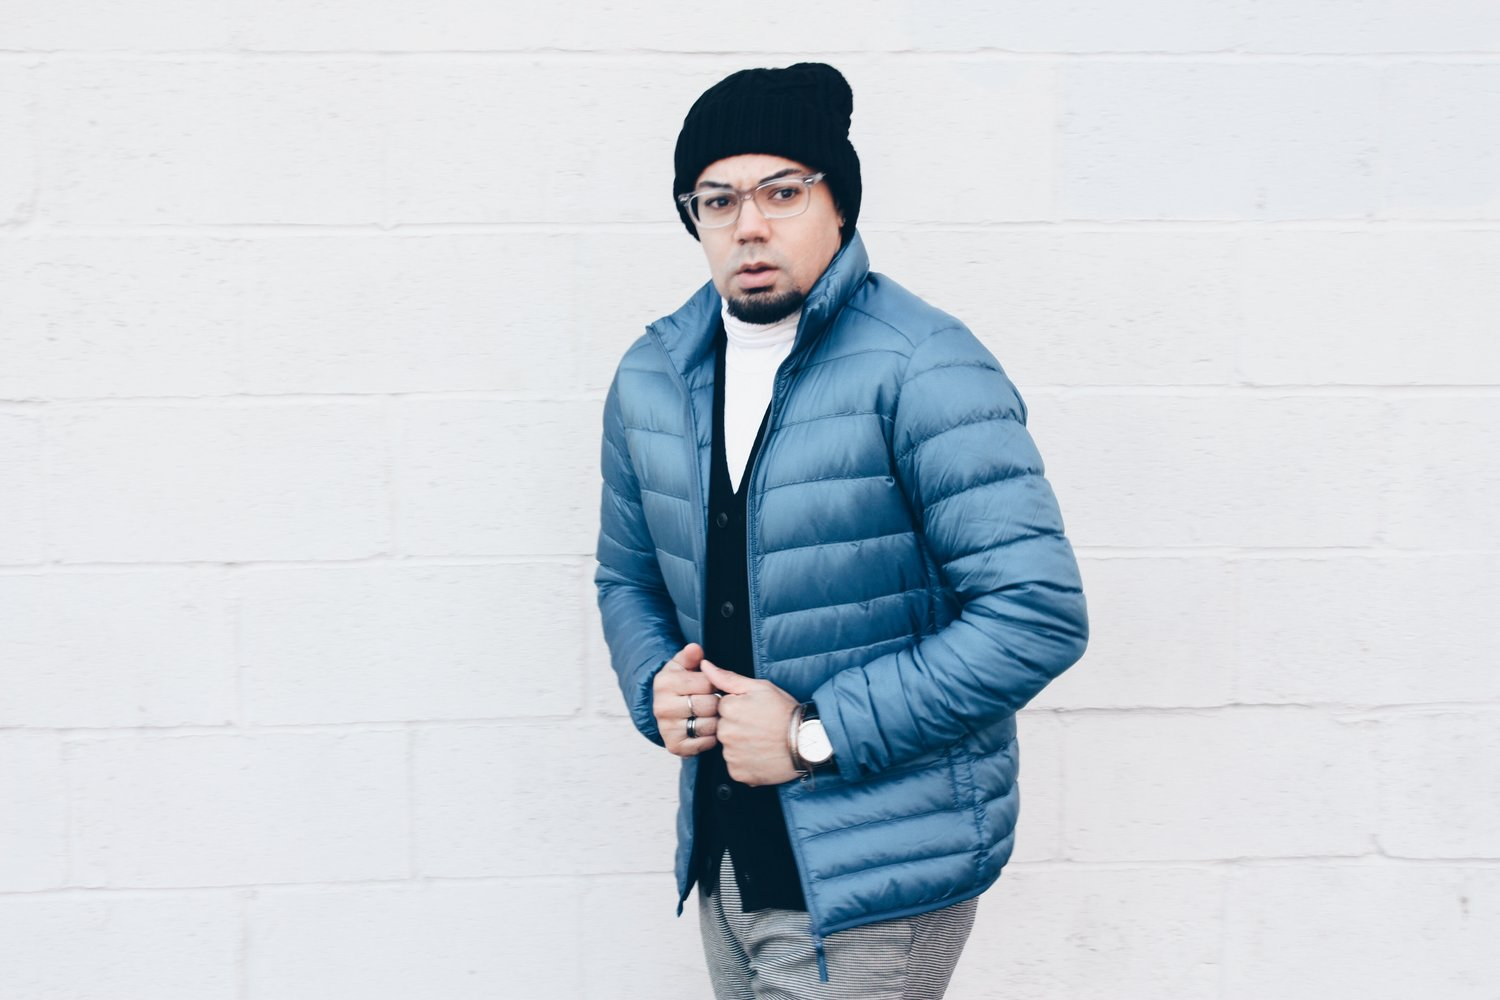 UNIQLO HEATTECH - Smart Holiday Looks with UNIQLO  25f13c7d1f6